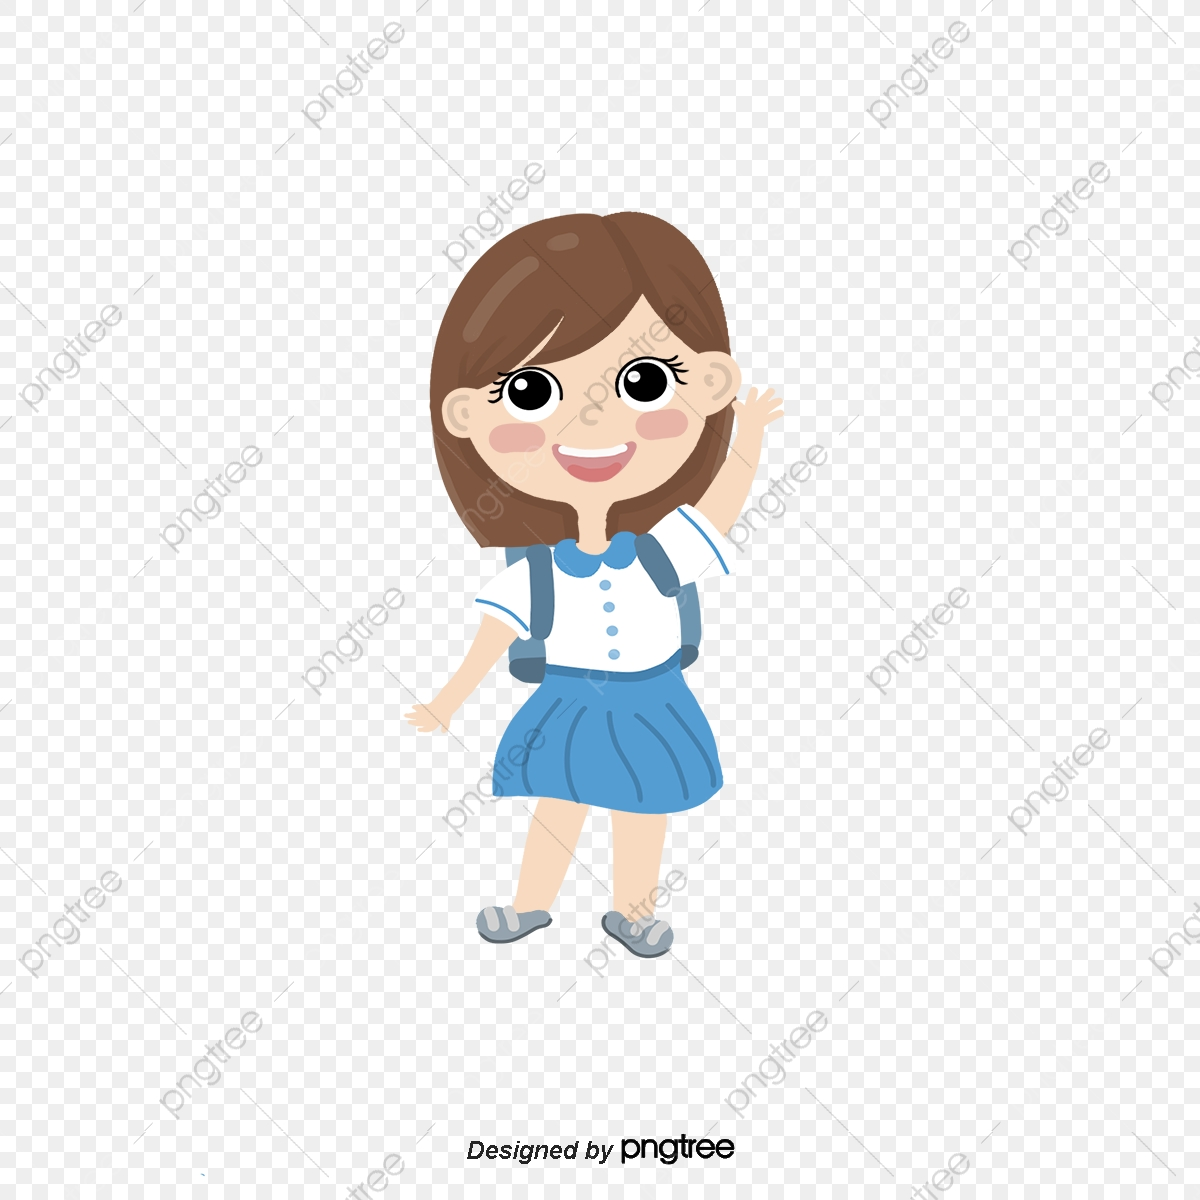 Cartoon Girl Png Images Vector And Psd Files Free Download On Pngtree